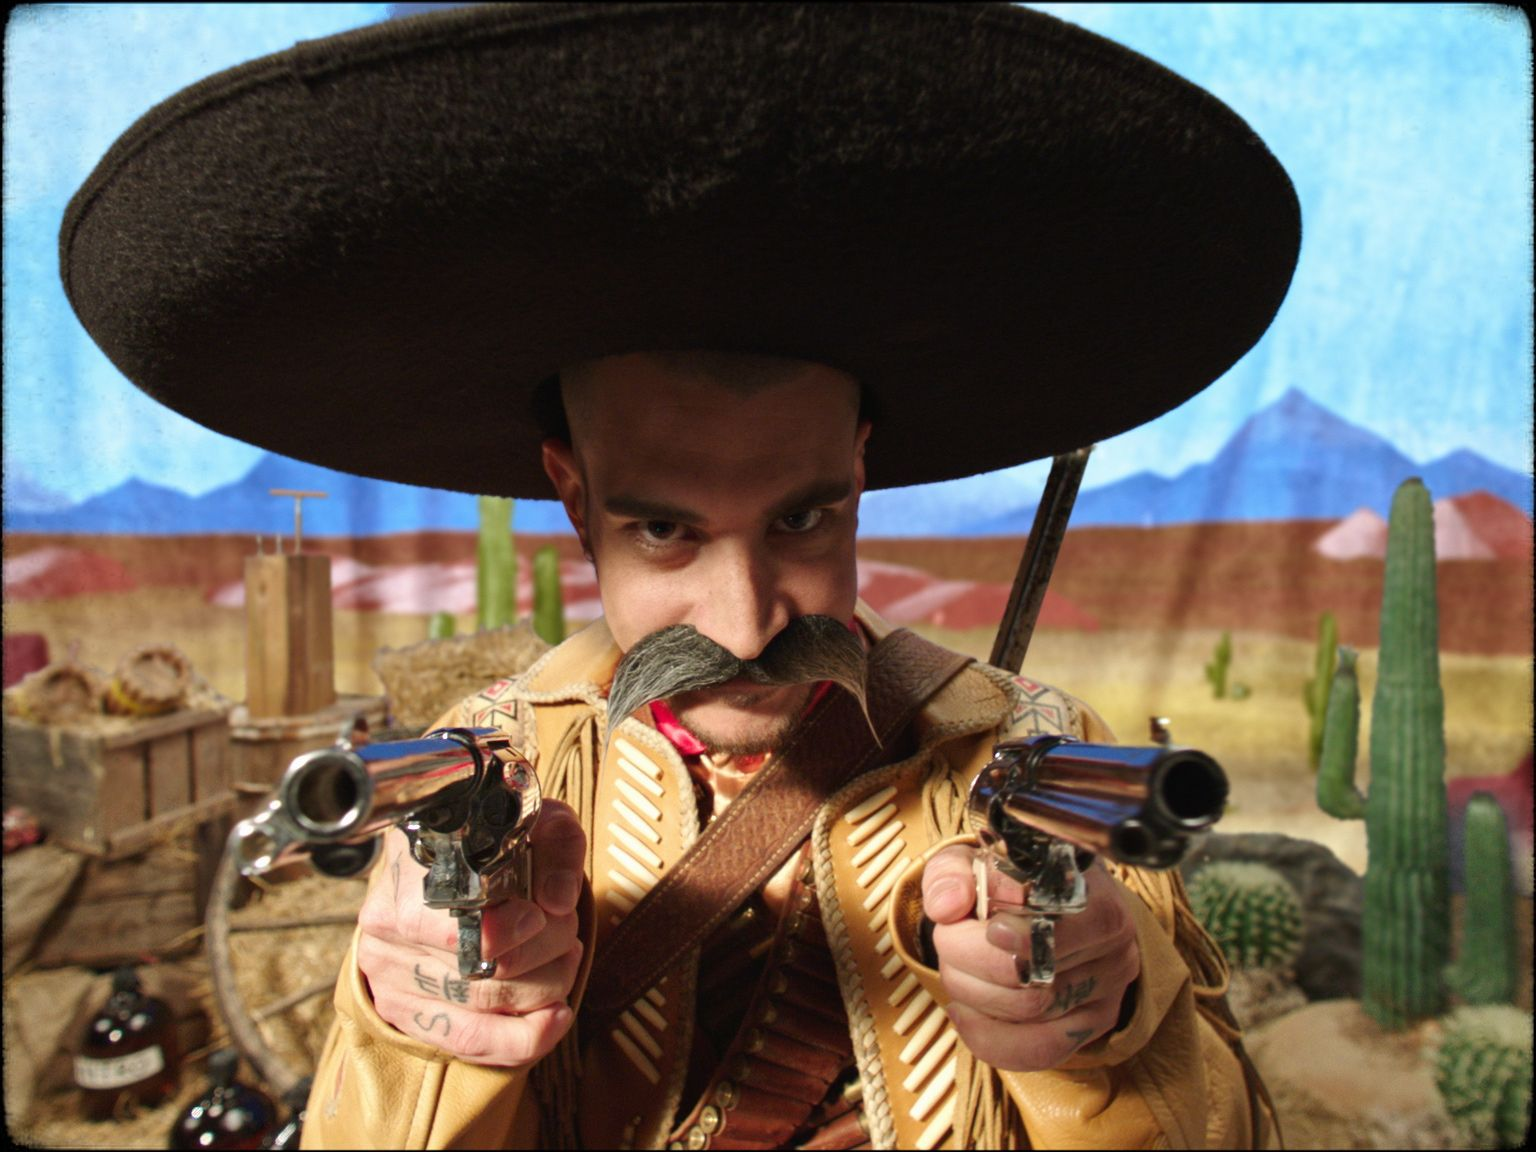 rapper Koriass wearing mexican cowboy costume in music video 5 à 7 filmed by Vincent Ruel-Cote from Les Gamins with 7ieme Ciel Records